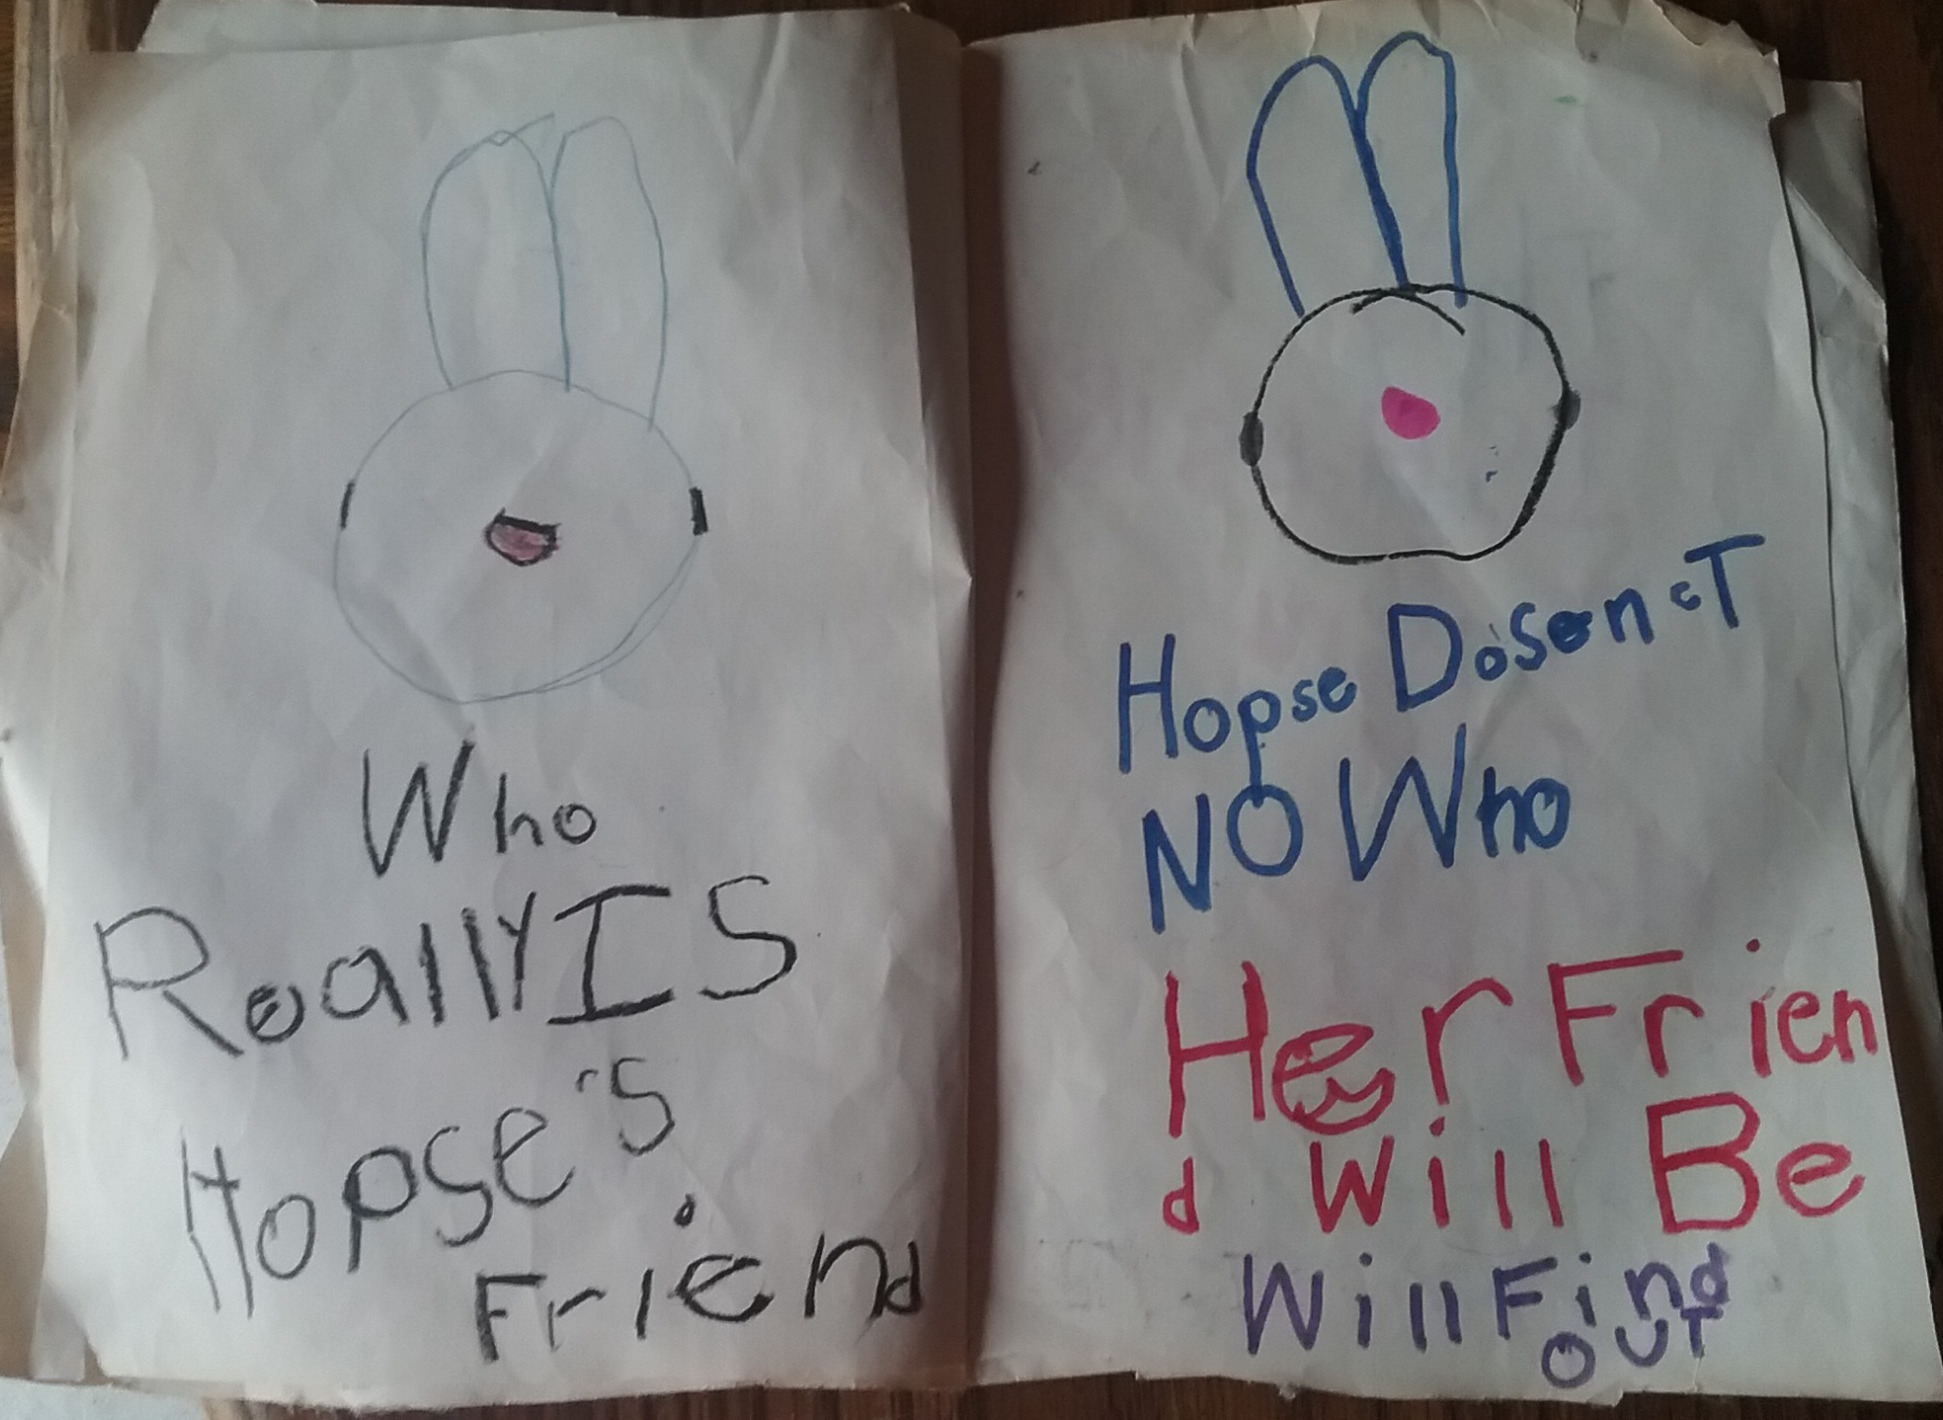 Hopsie's Friend - middle pages.